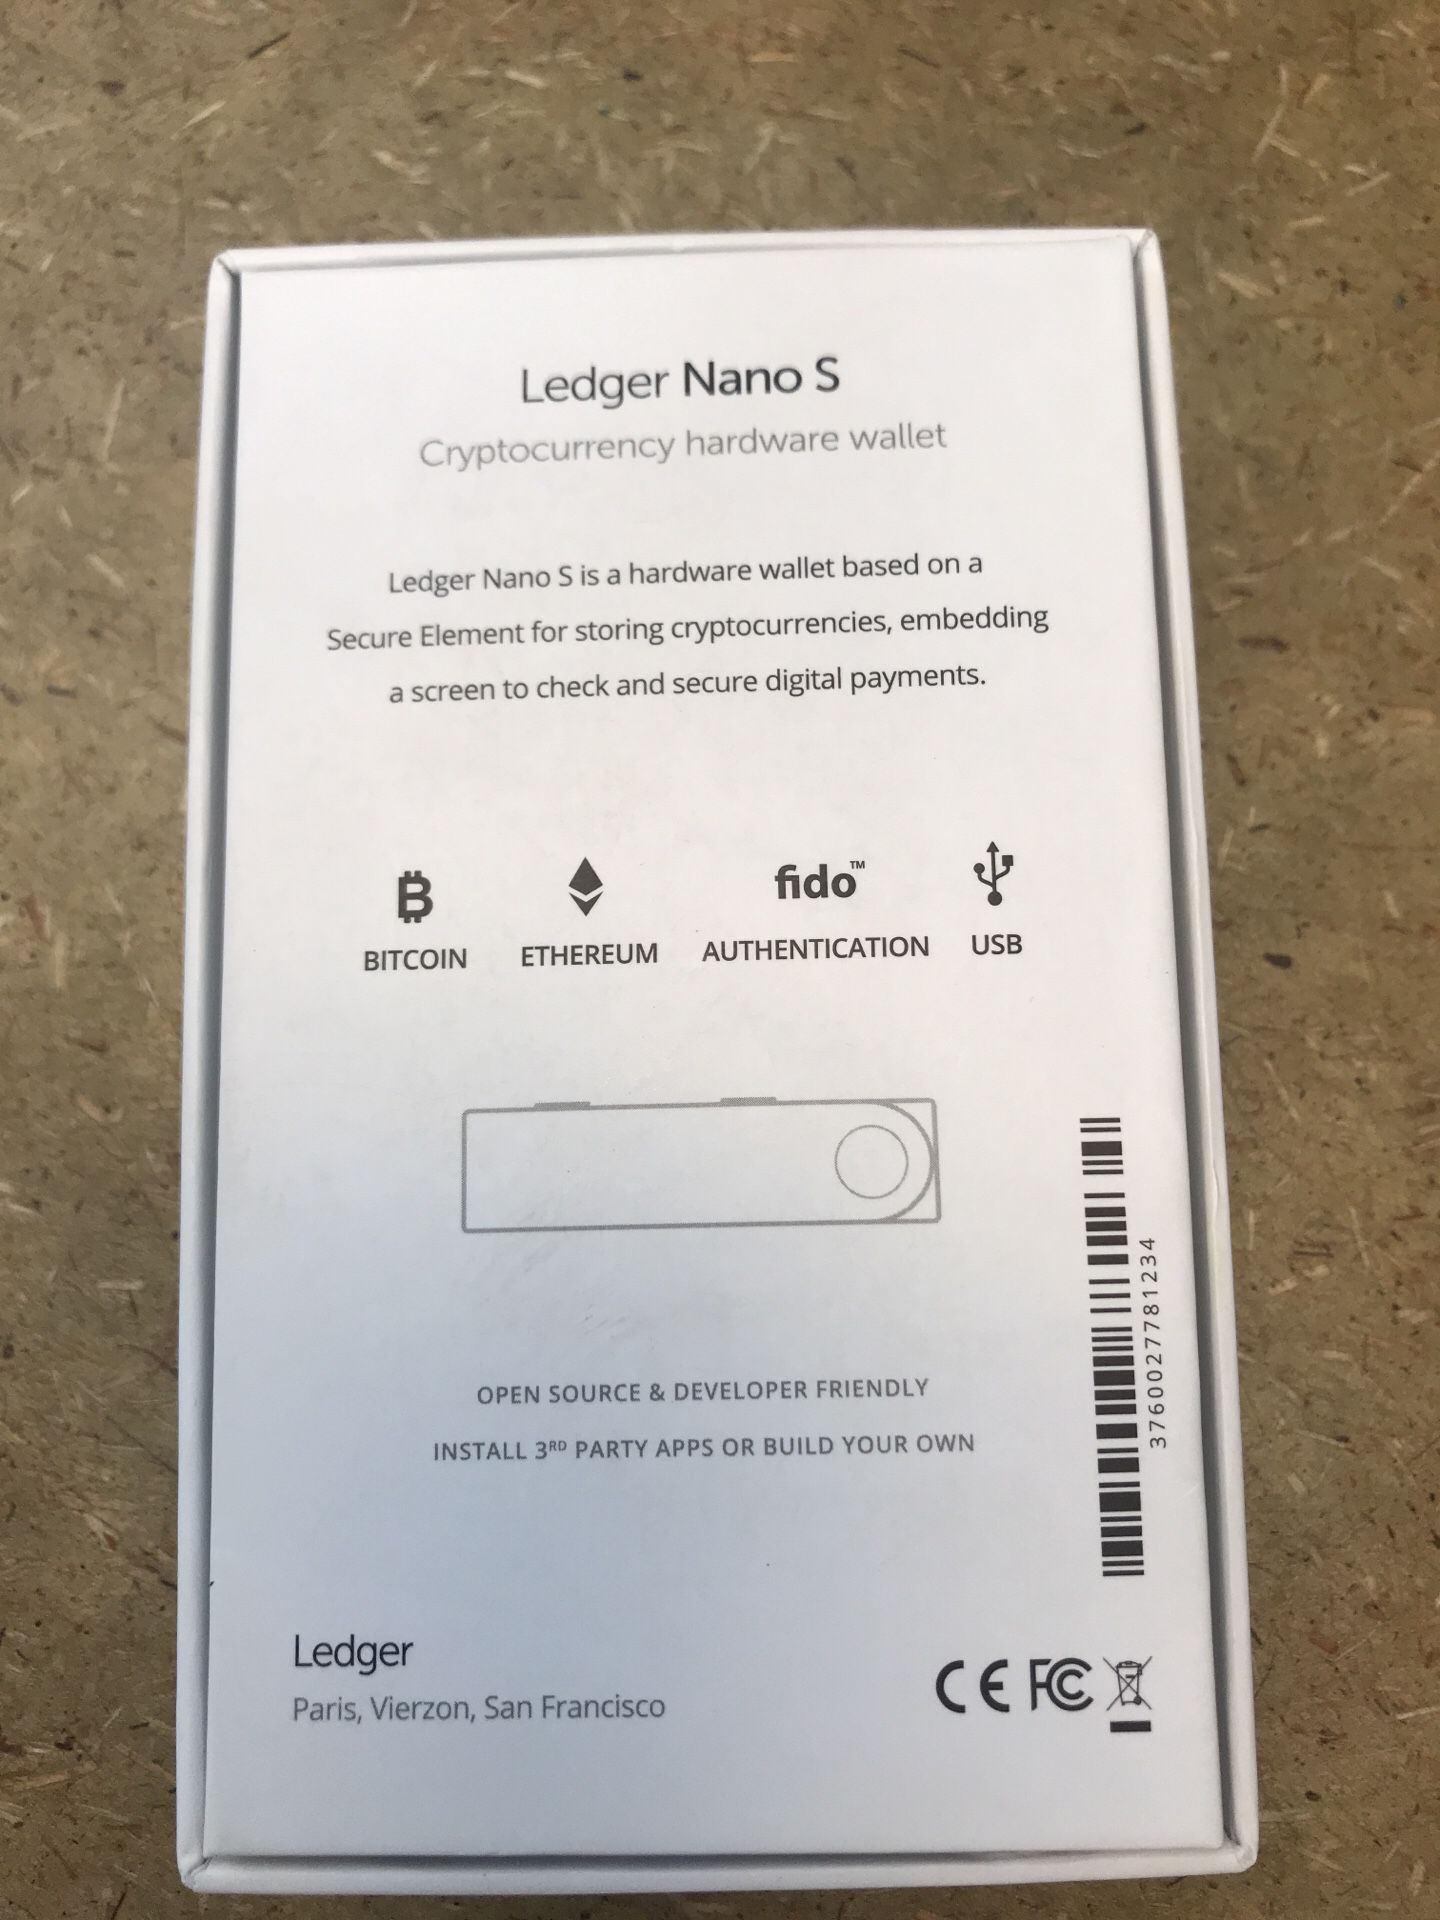 New Ledger Nano S Cryptocurrency Hardware Wallet